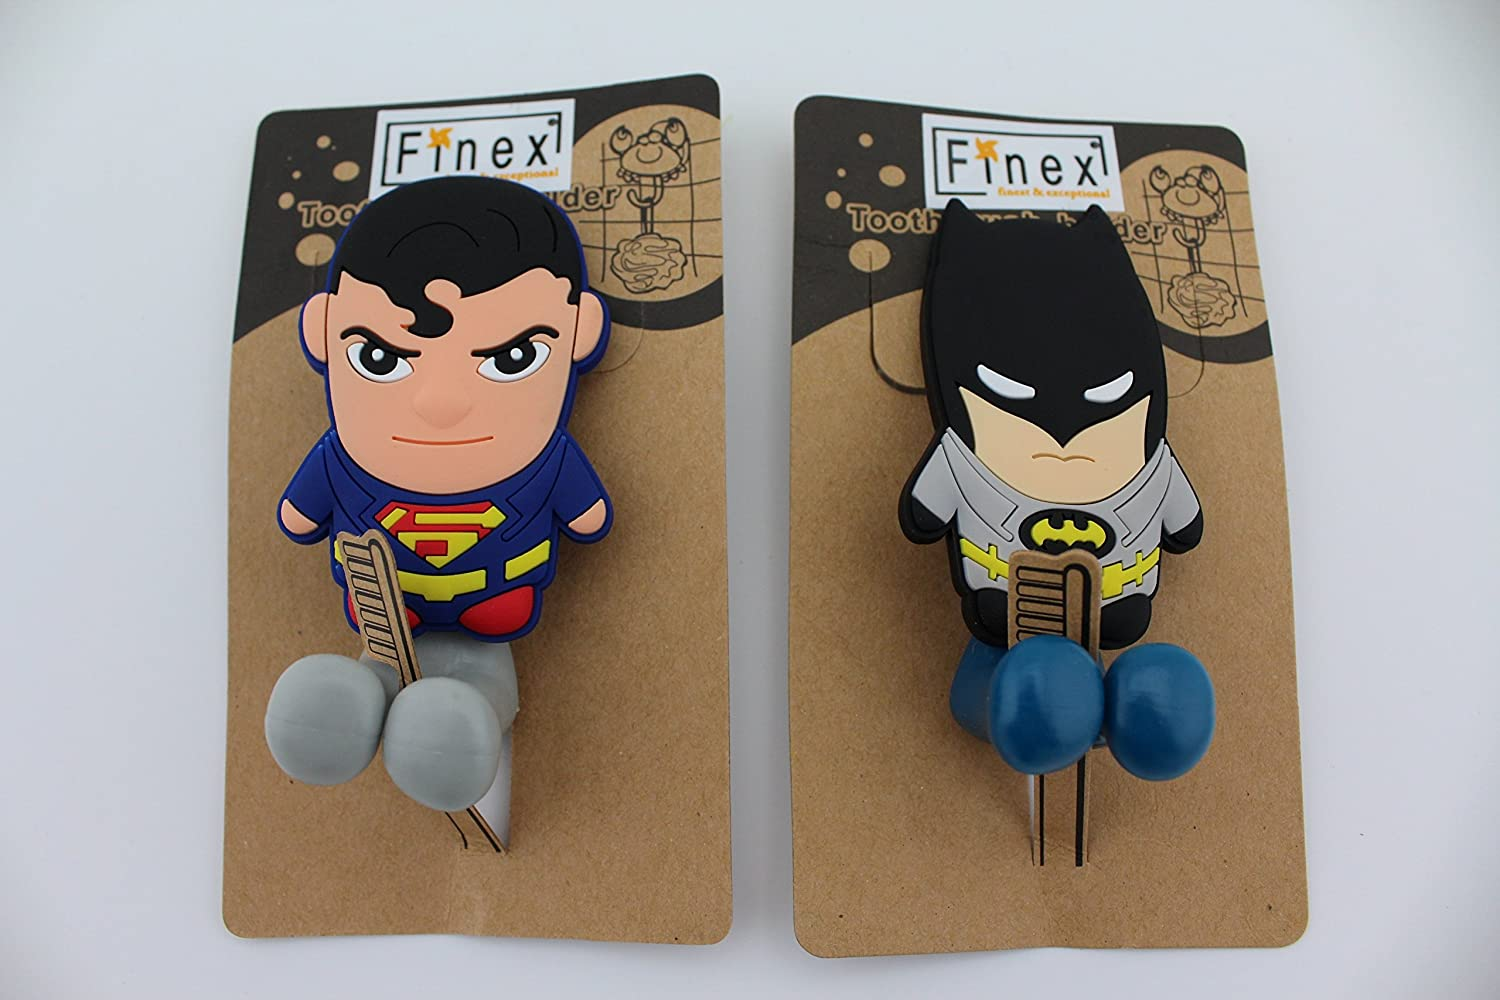 Amazon.com: FinexSet of 2 DC COMICS SUPERHEROES Batman vs & Superman Toothbrush Holders with Suction Cup for wall in bathroom at home: Home & Kitchen